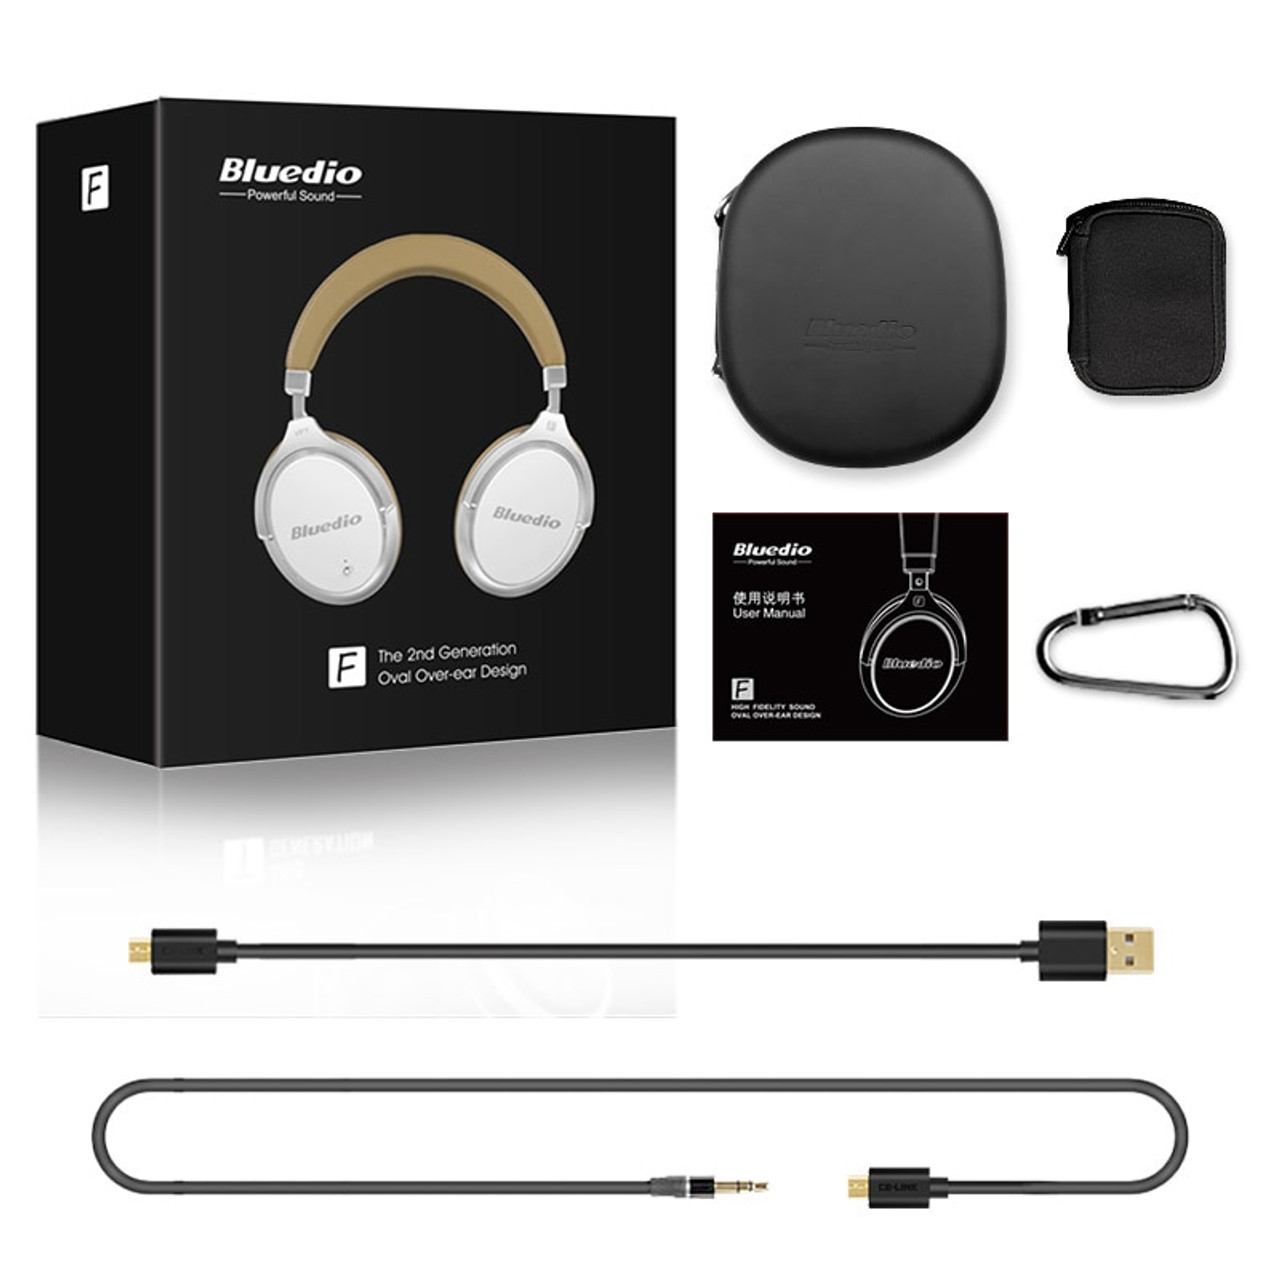 7c01a88635b ... Bluedio F2 headset with ANC Wireless Bluetooth Headphones with  microphone support music ...